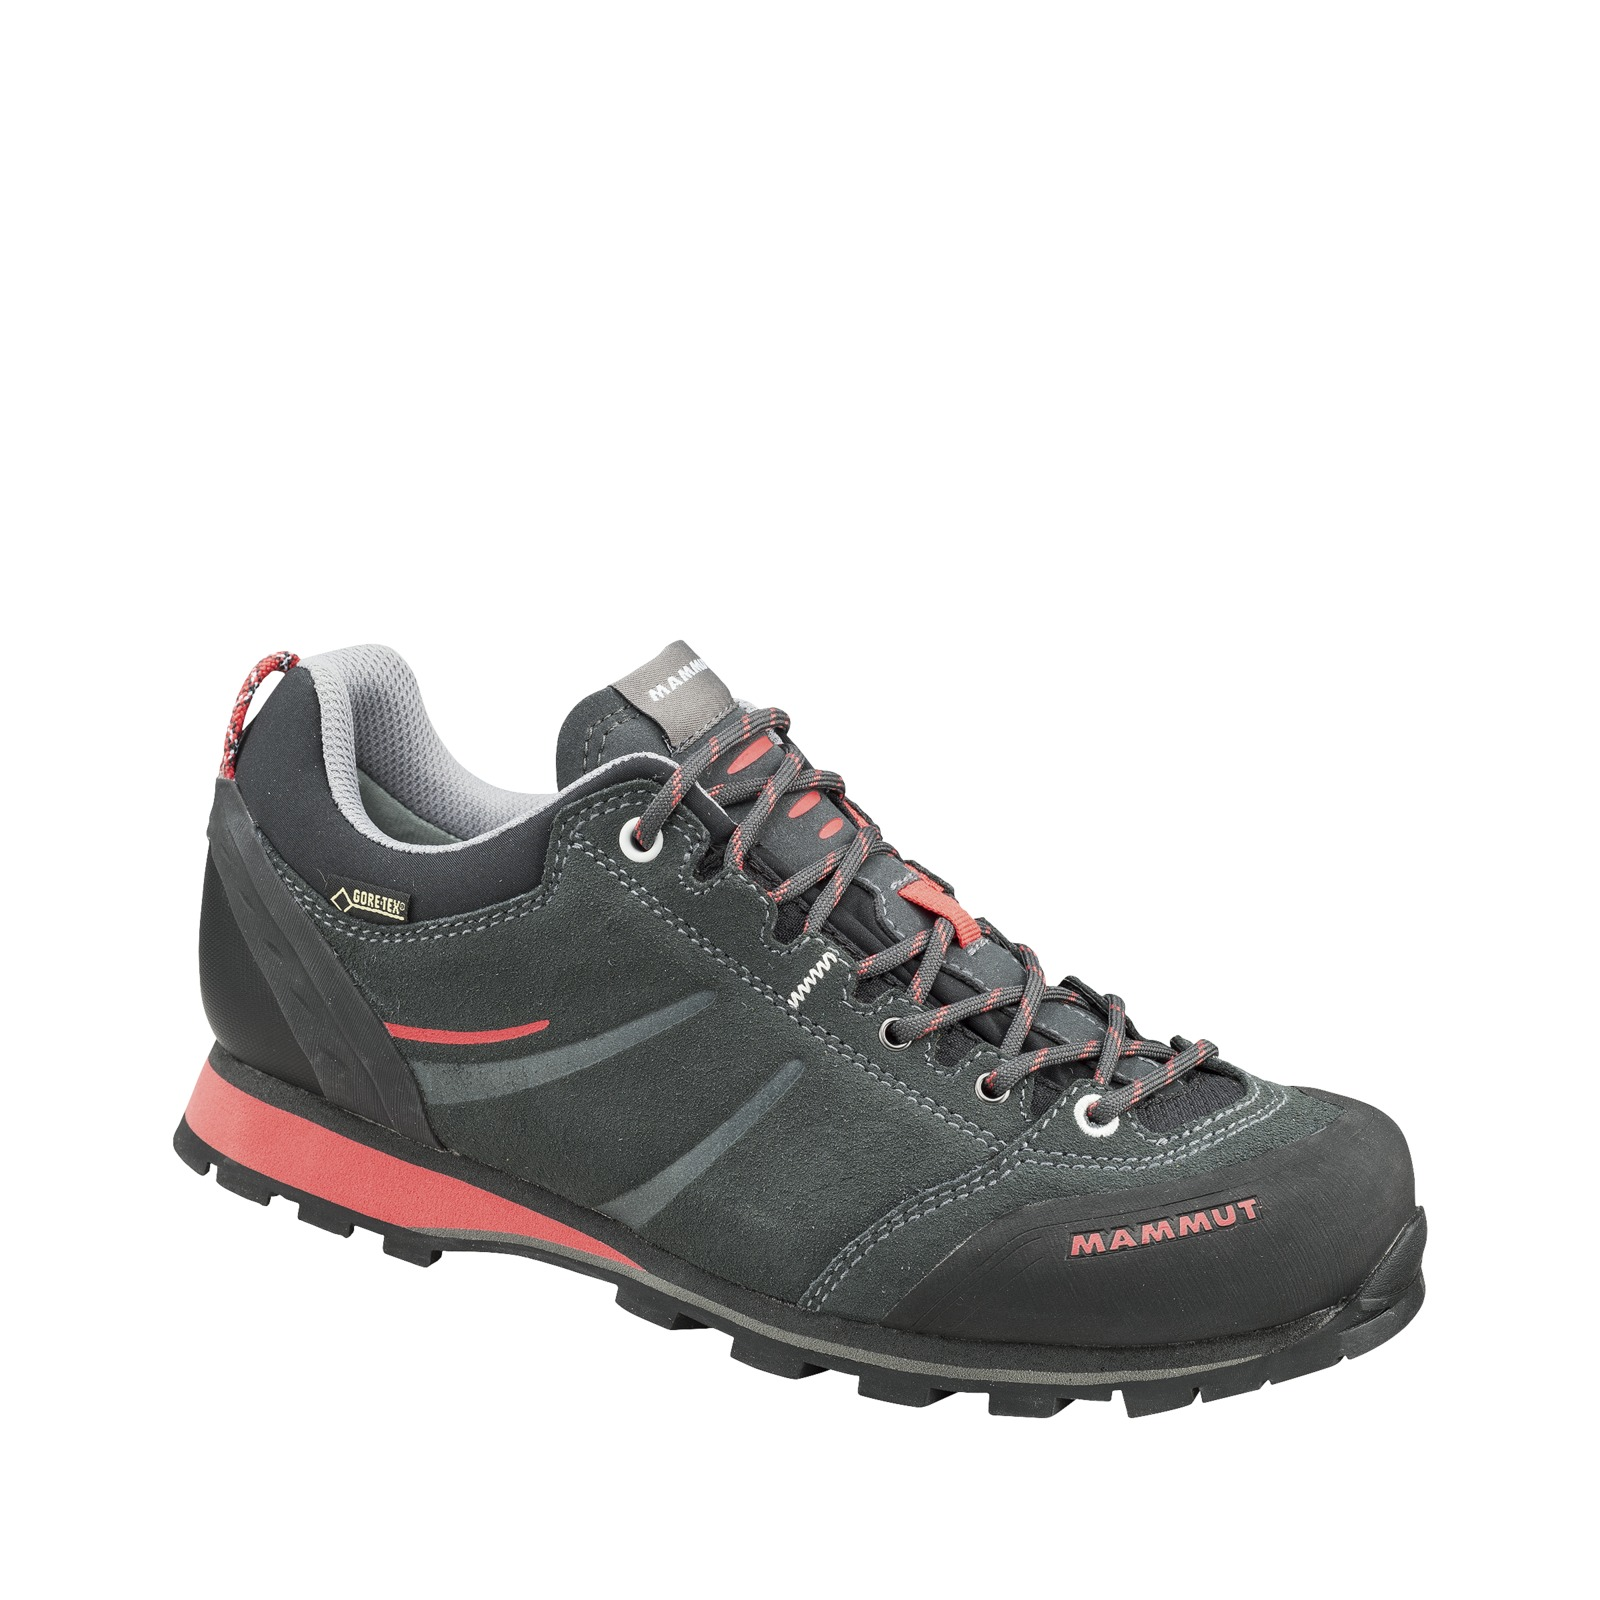 MAMMUT WALL GUIDE LOW GTX® WOMEN -30%